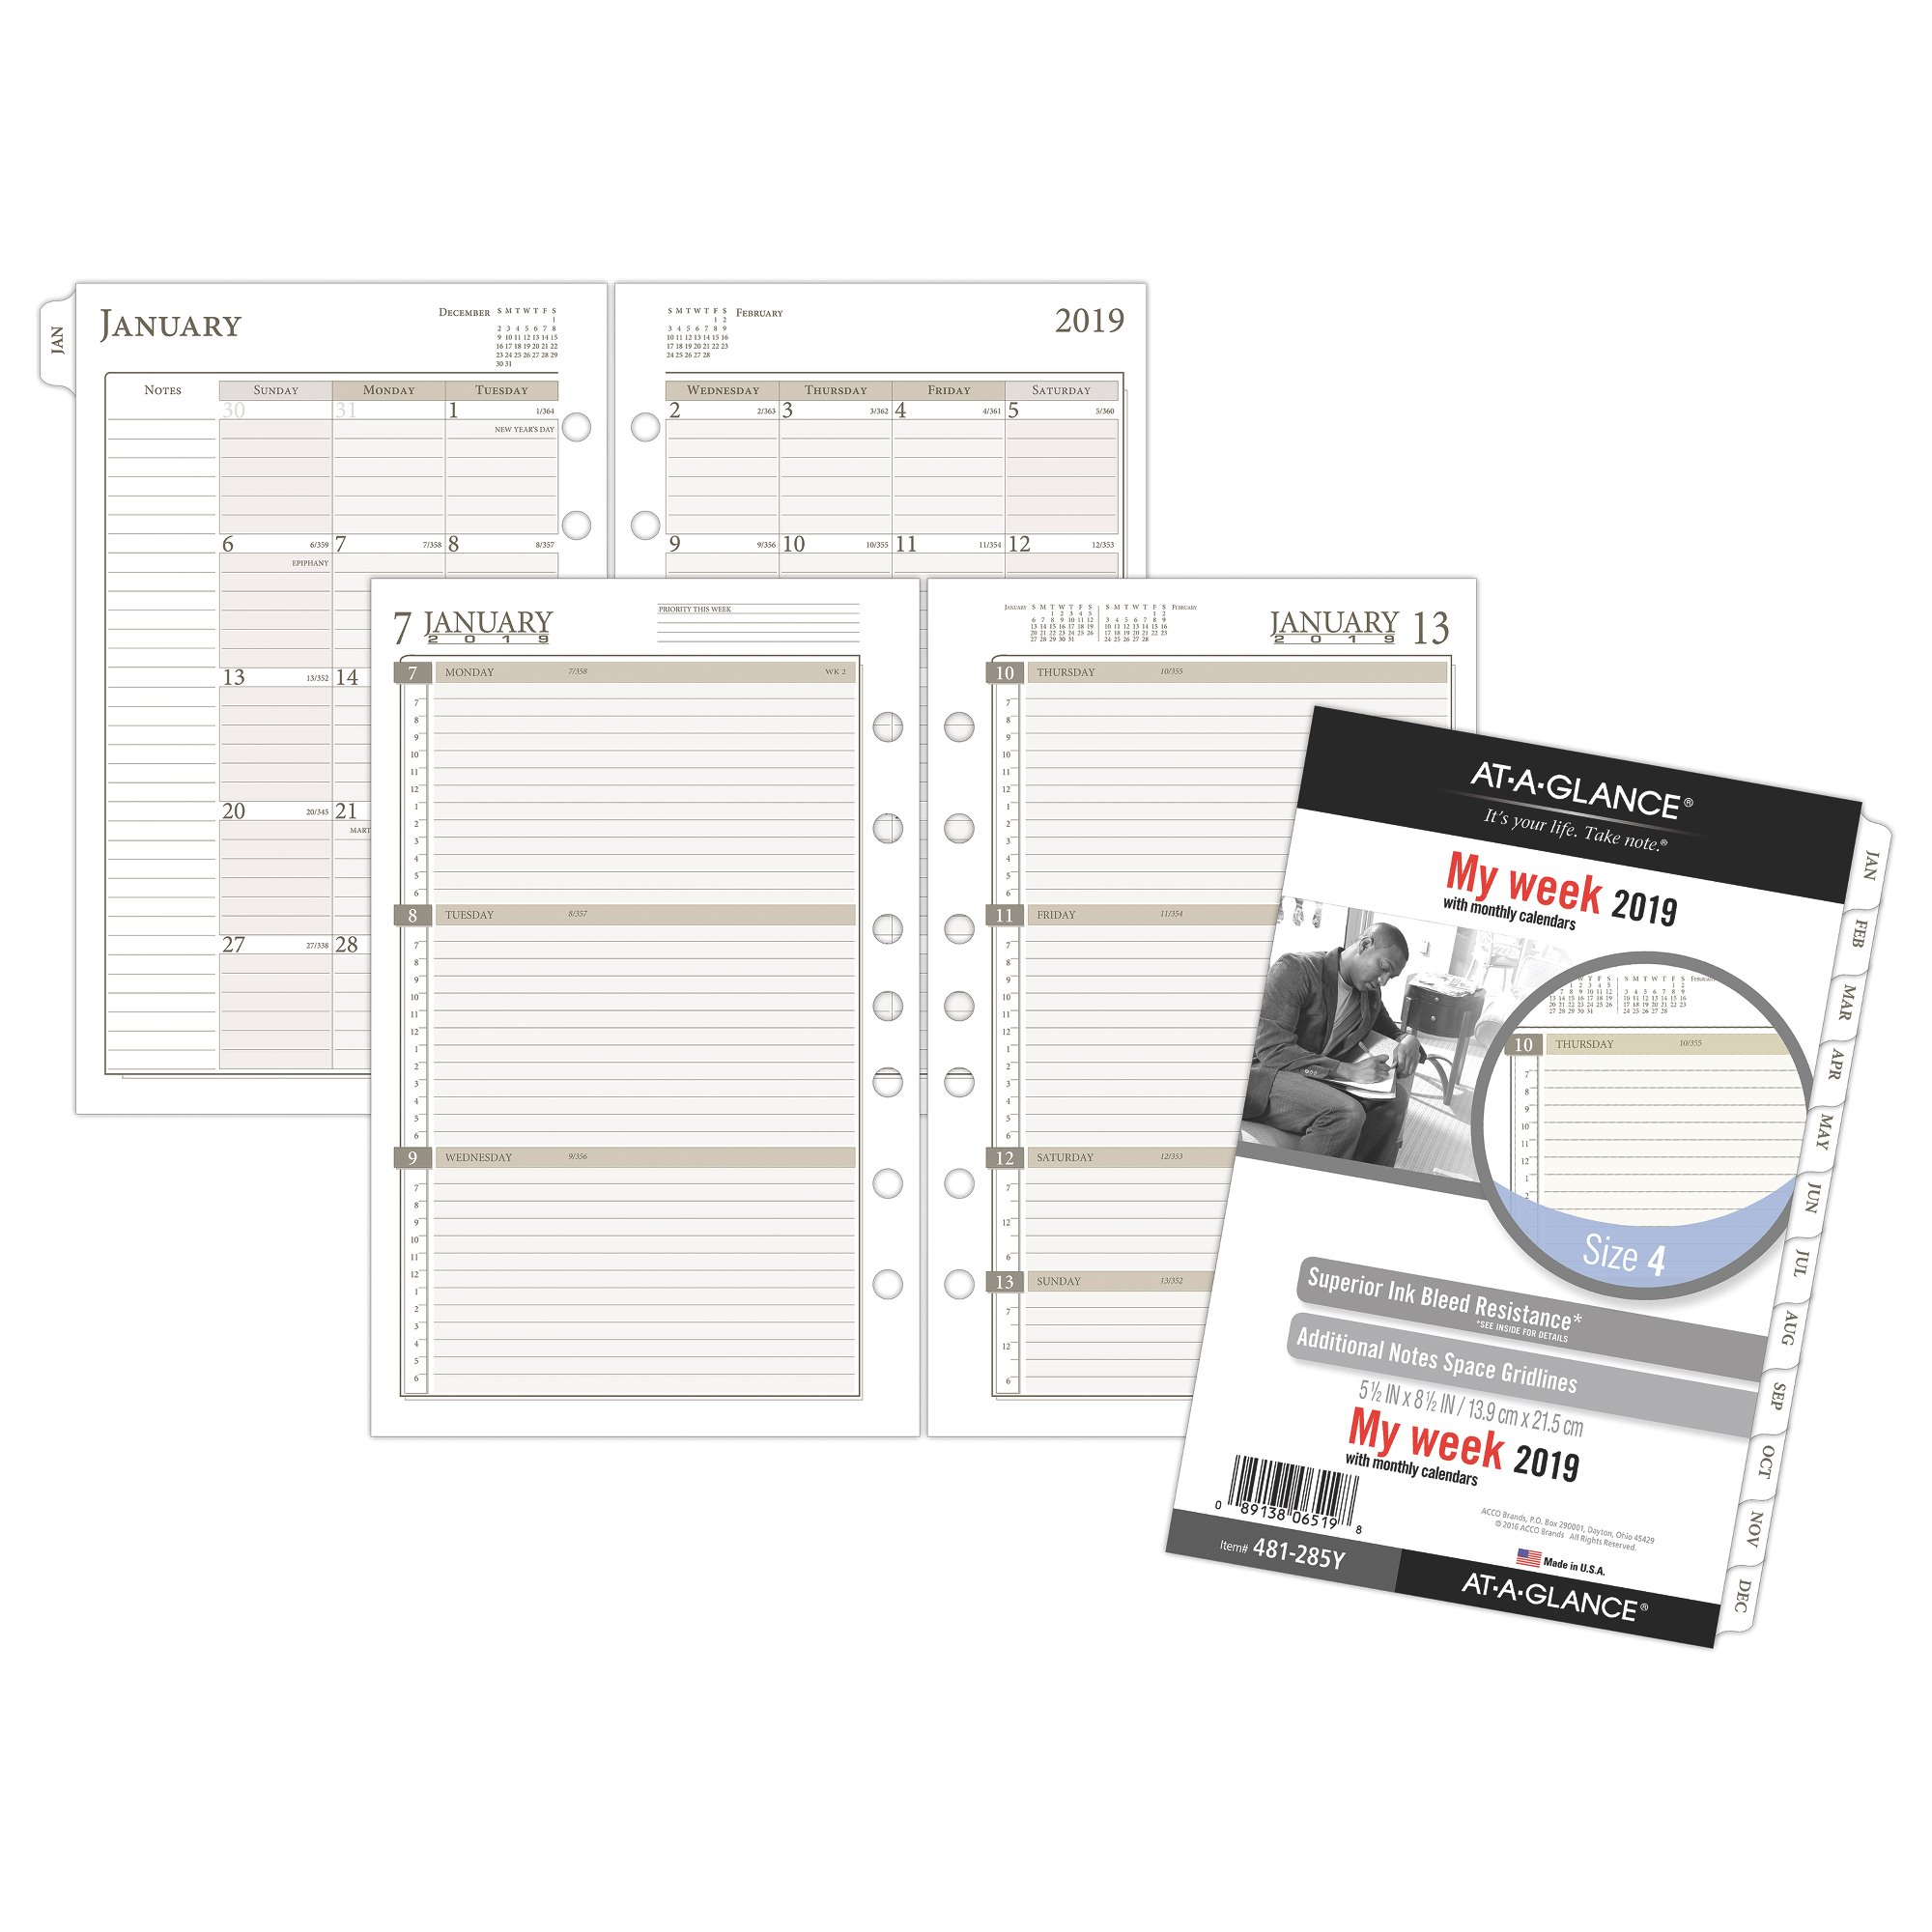 At-A-Glance Day Runner Weekly Planner Refill Size 4 Weekly Planner Refills by AT-A-GLANCE Day Runner